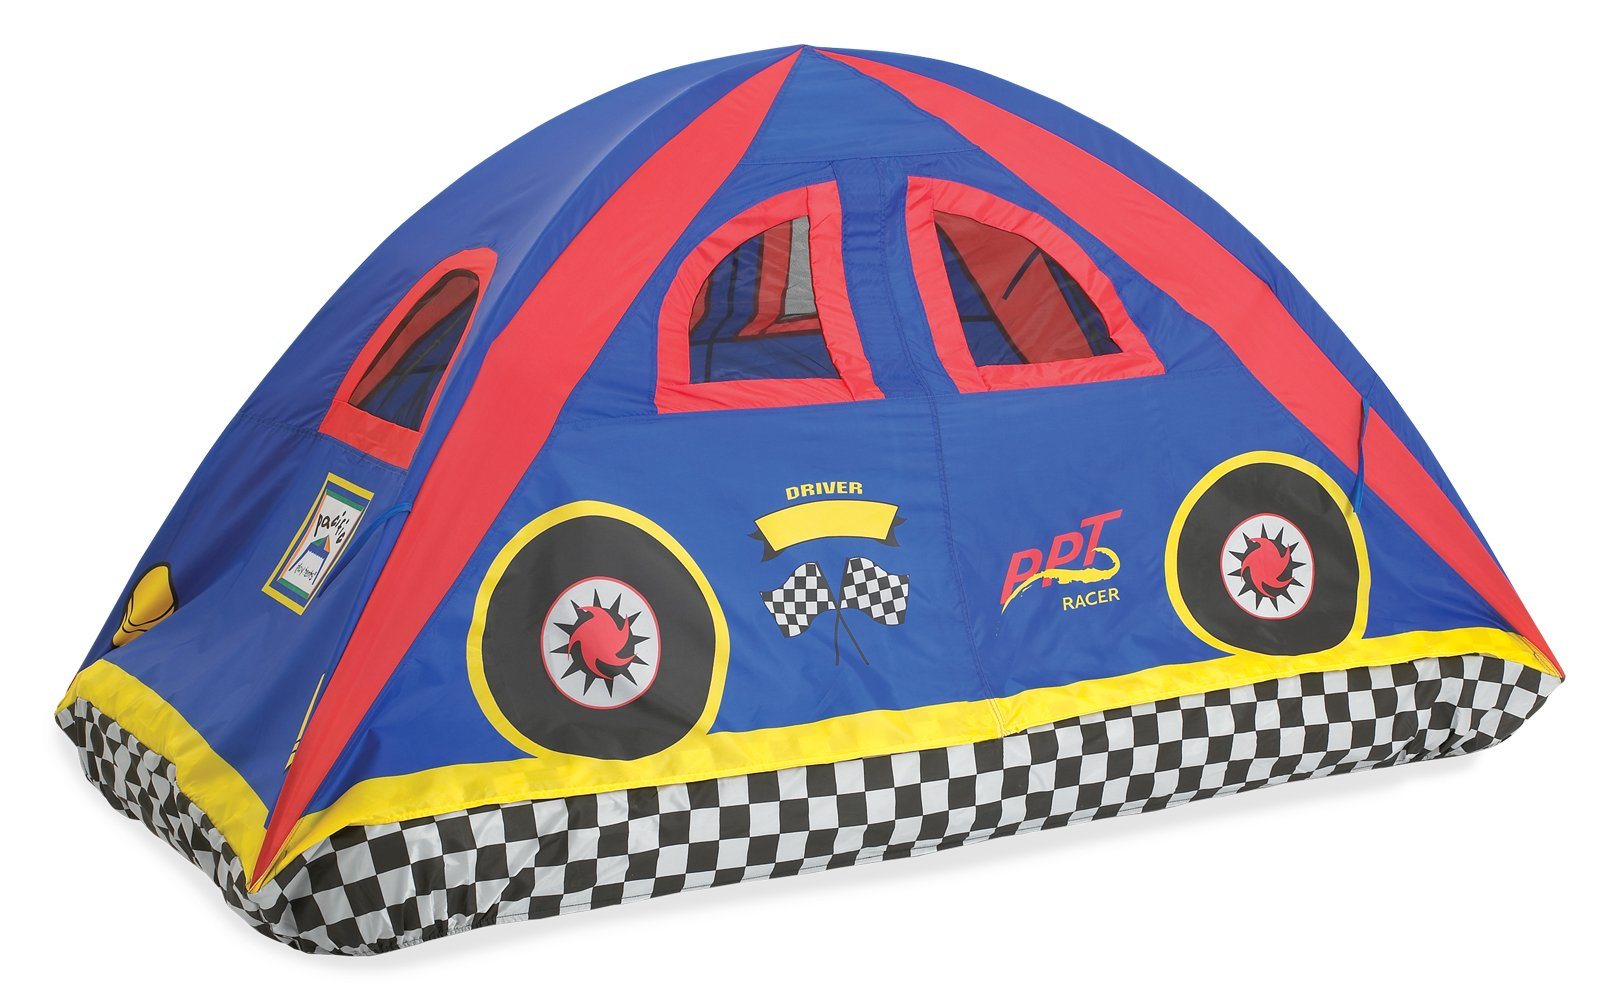 Pacific Play Tents 19710 Kids Rad Racer Bed Tent Playhouse - Twin Size by Pacific Play Tents